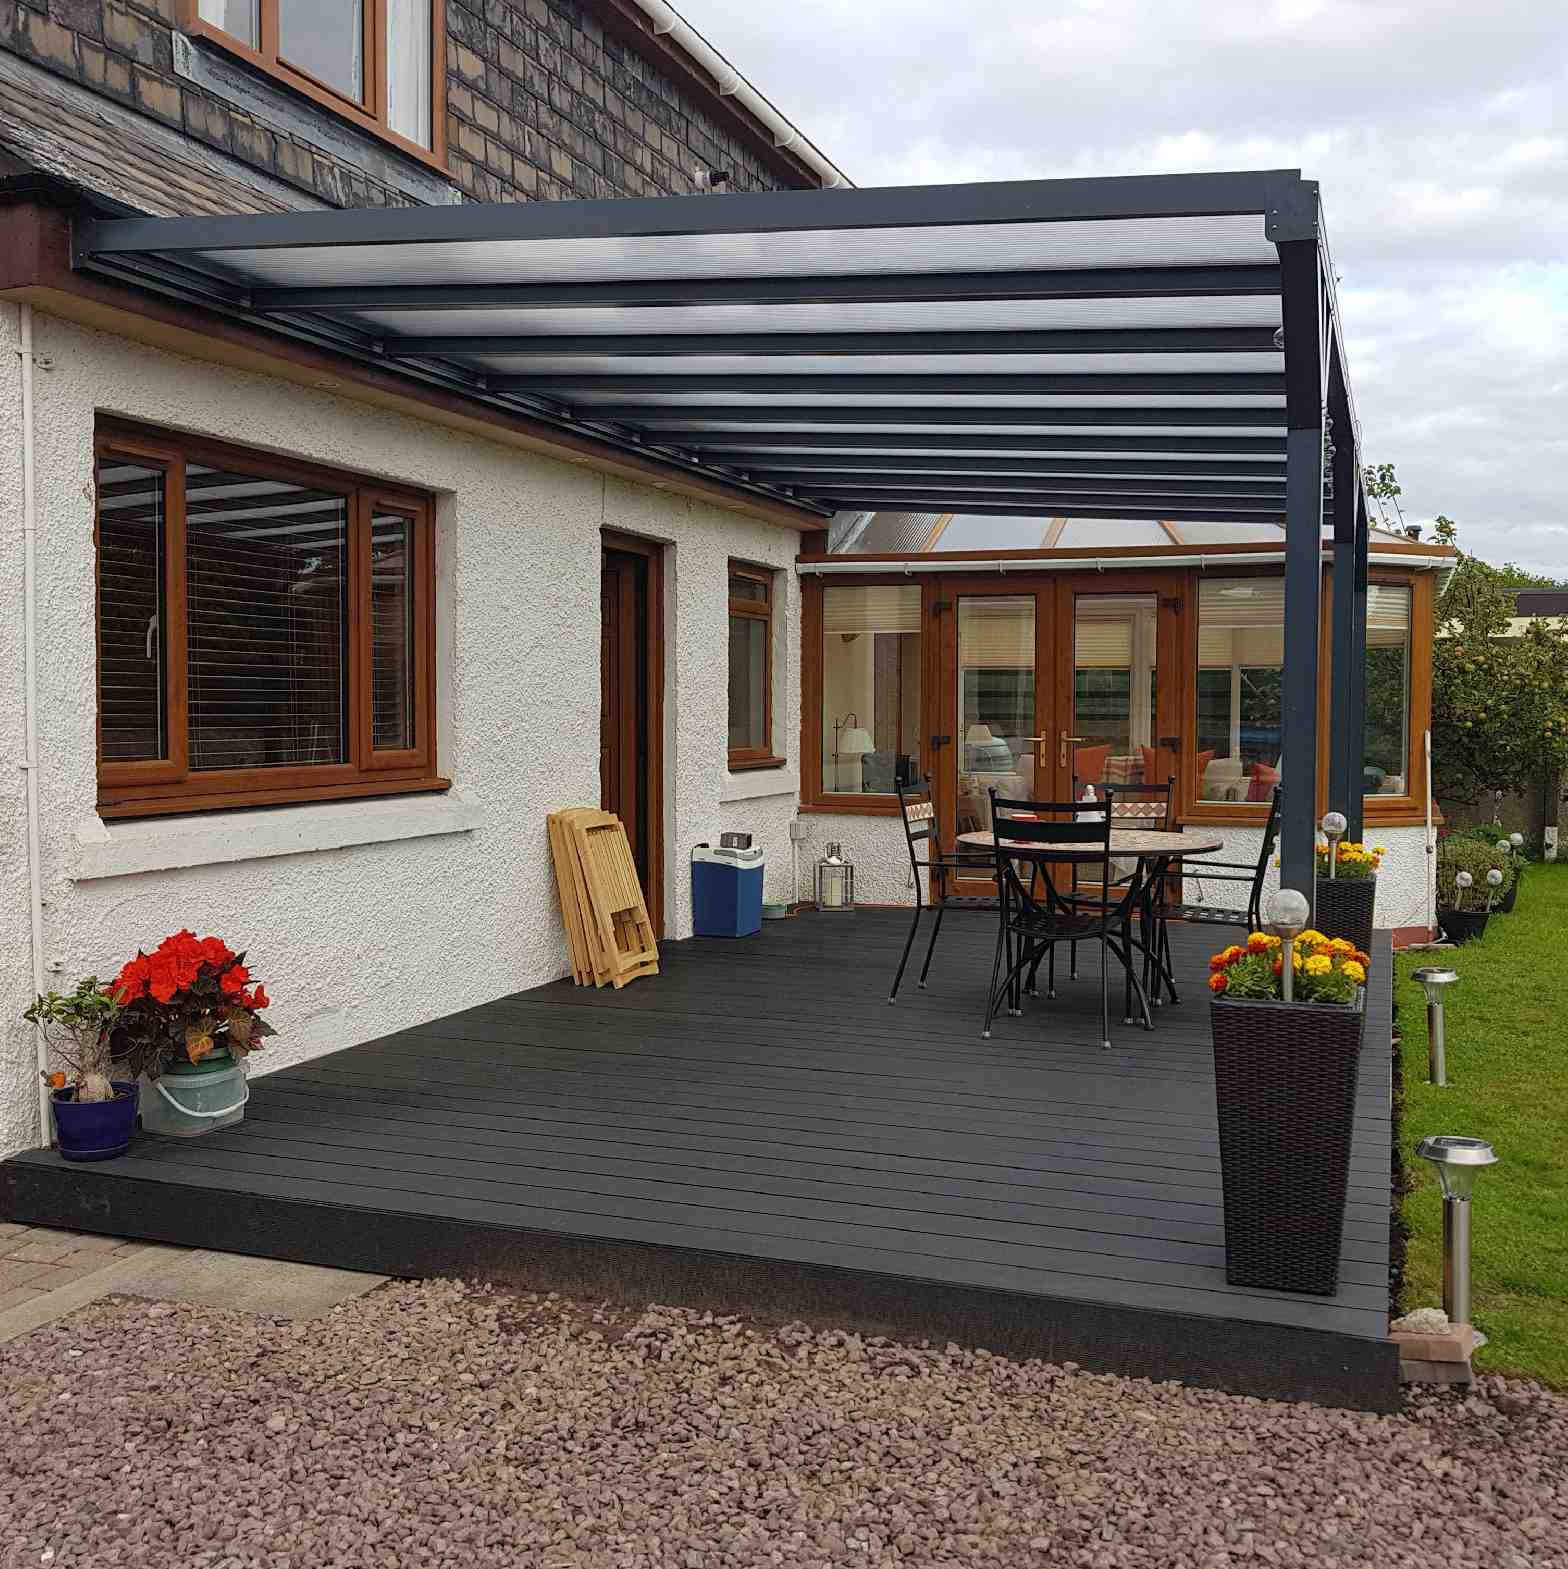 Buy Omega Verandah, Anthracite Grey, 6mm Glass Clear Plate Polycarbonate Glazing - 8.4m (W) x 2.0m (P), (4) Supporting Posts online today